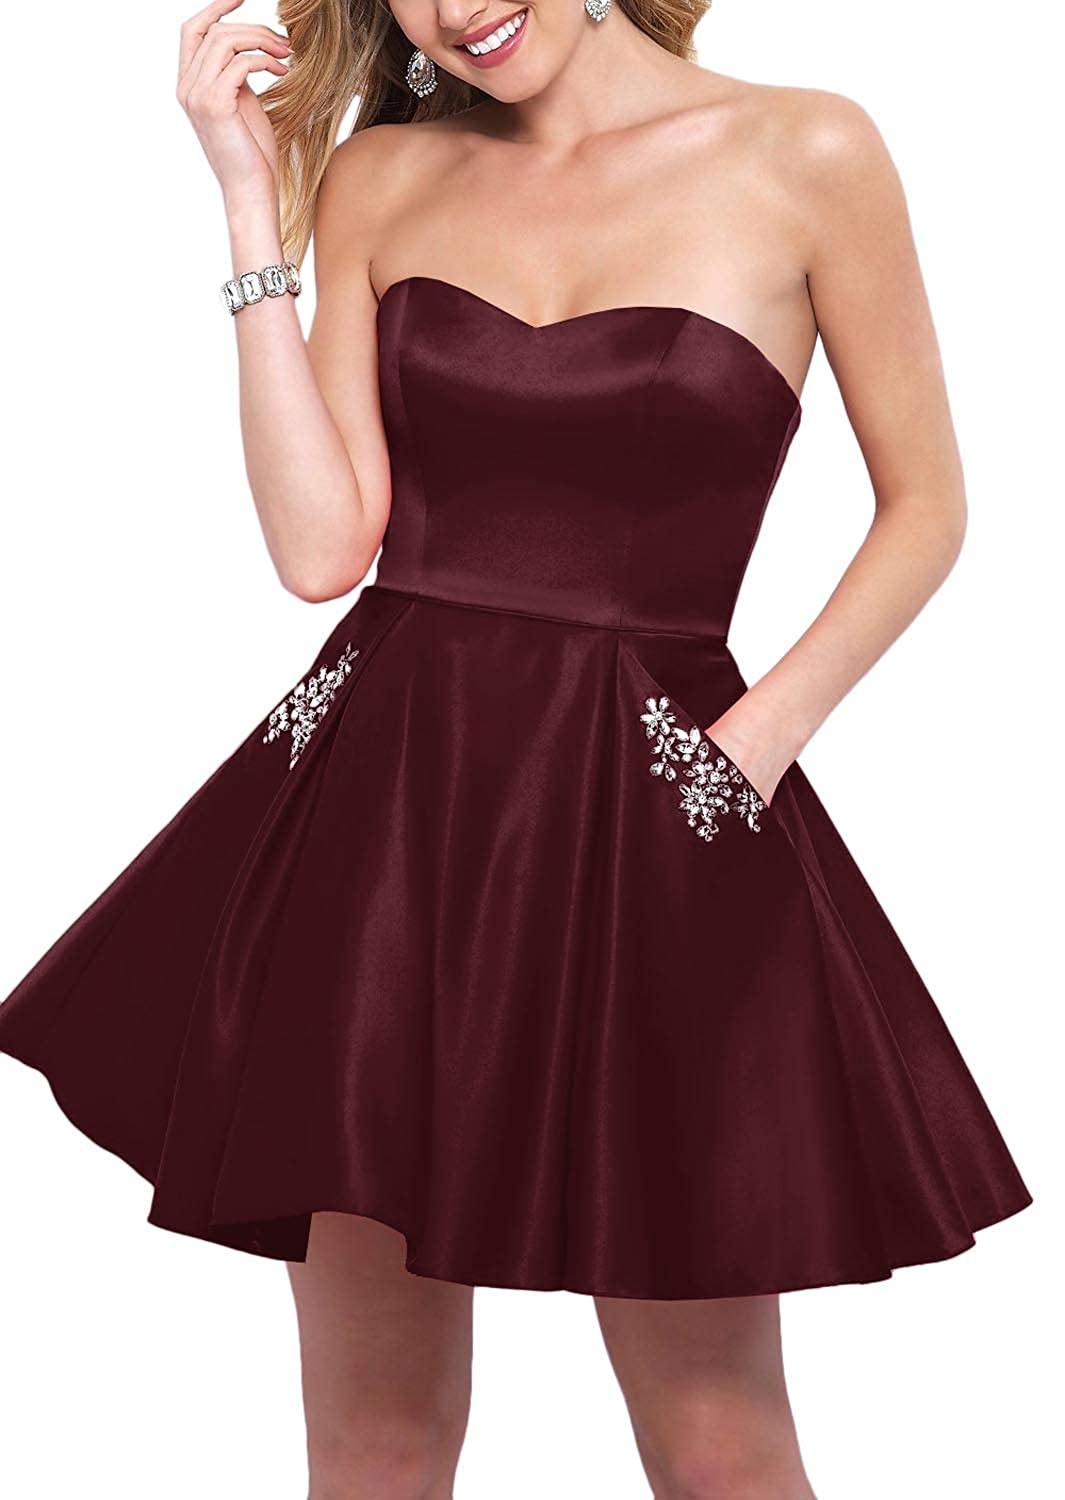 Burgundy YnanLi Dress Short Ball Gown Homecoming Dresses 2019 Strapless Sweetheart with Beaded Pockets